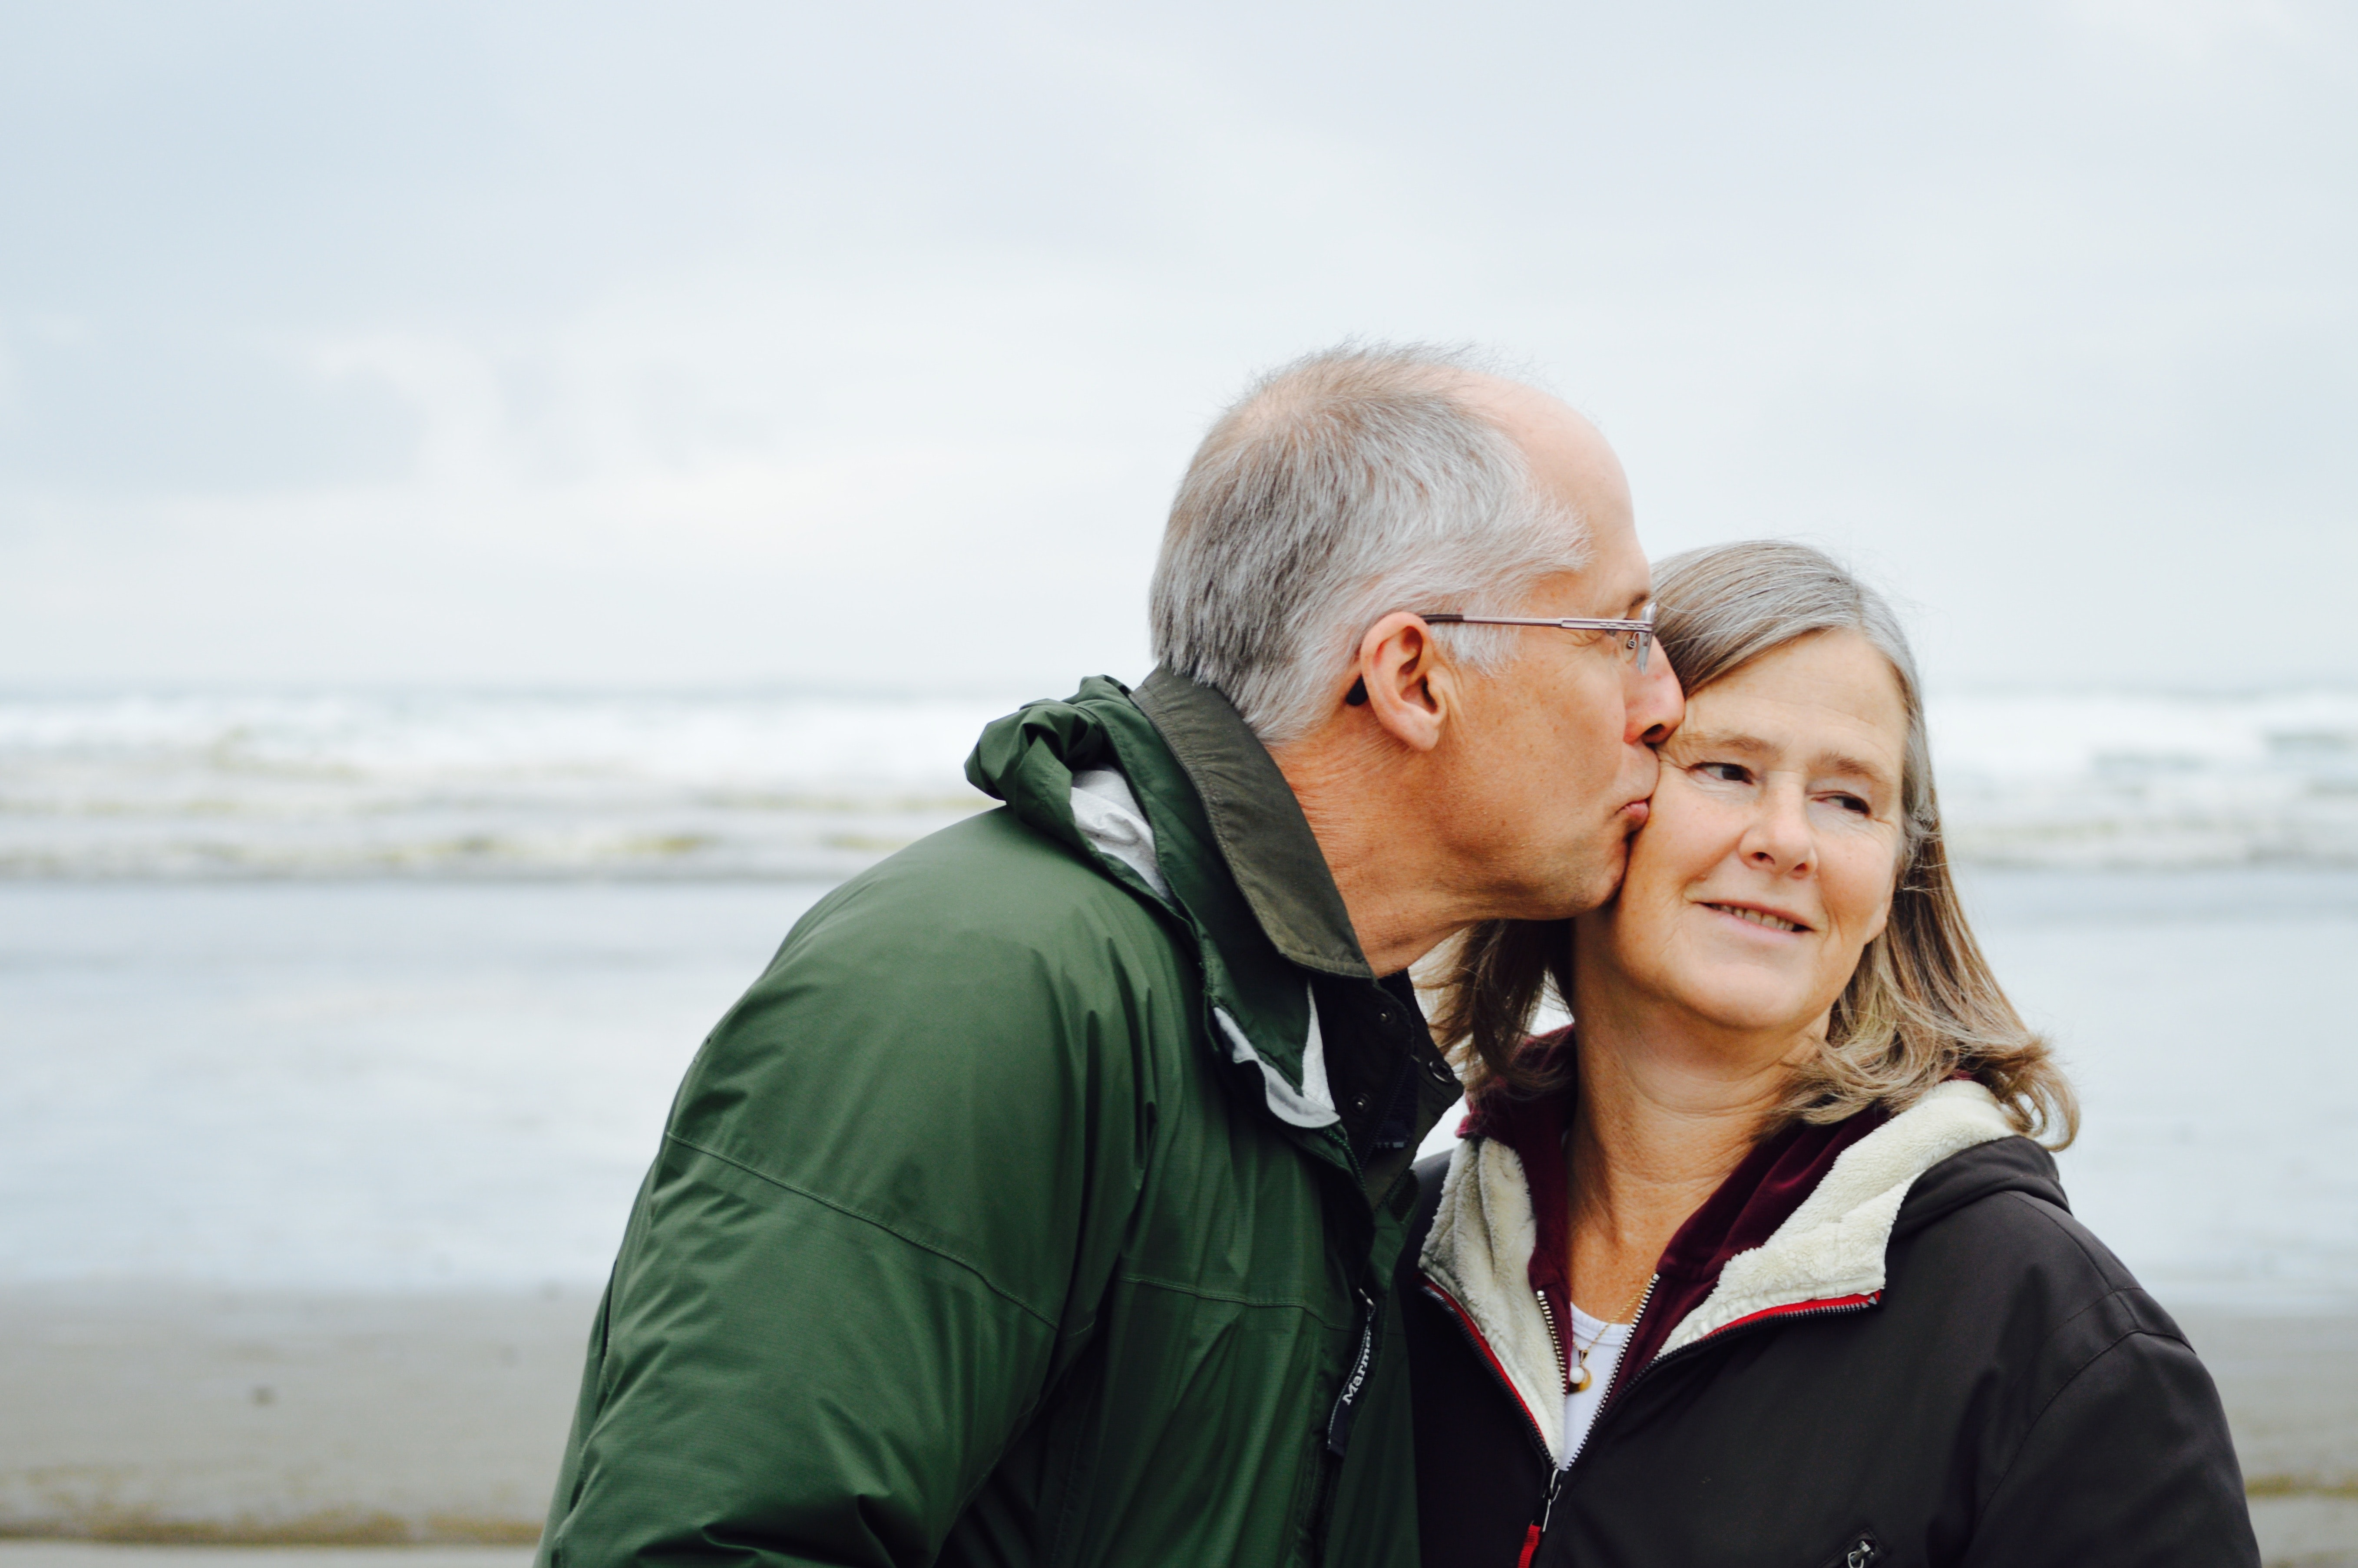 60 plus dating- guarantees for a successful date